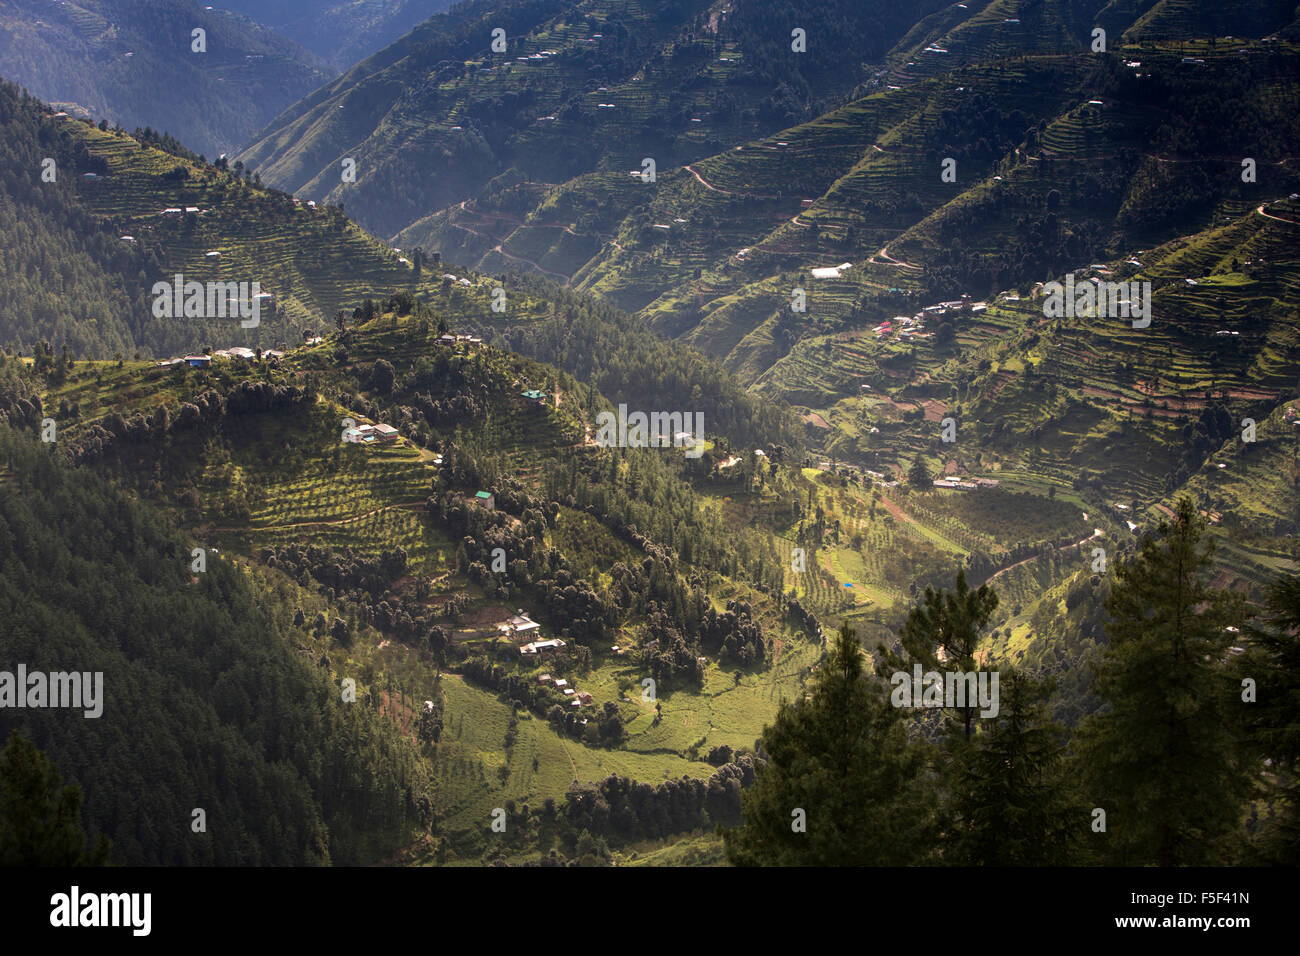 India, Himachal Pradesh, Shimla (Simla), terraced apple orchards on steep hillsides - Stock Image